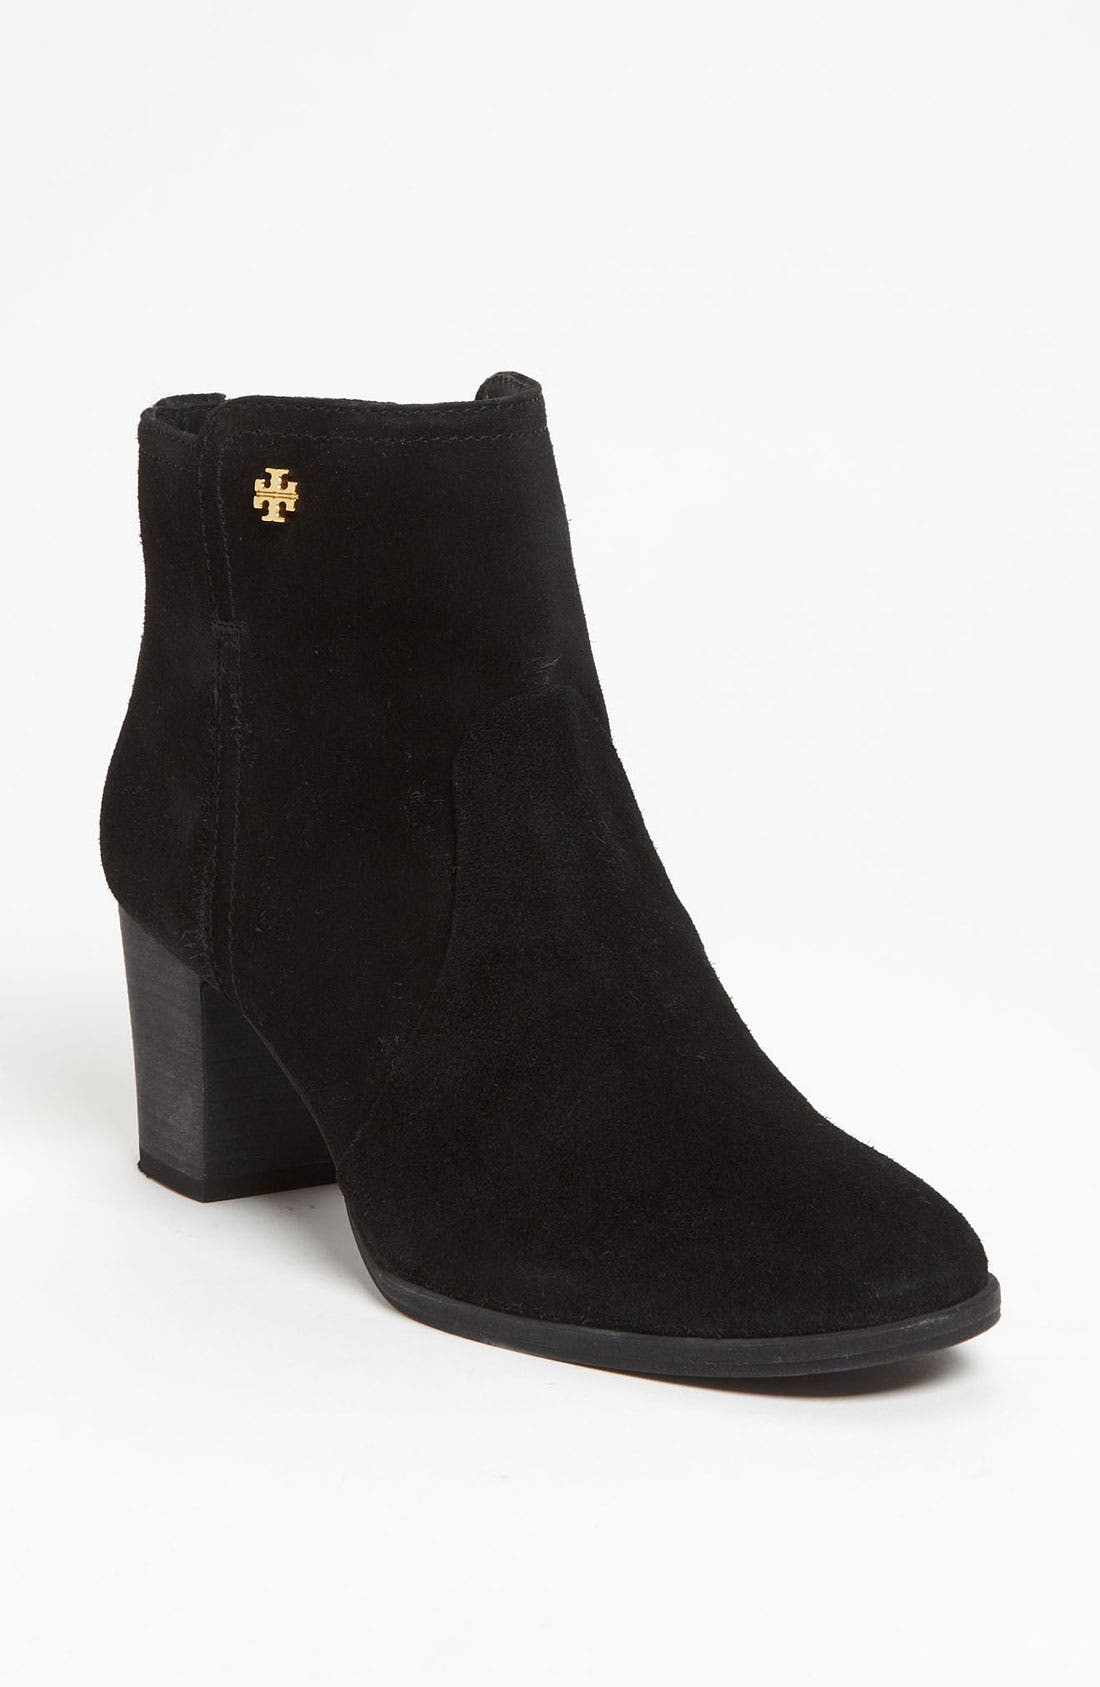 Alternate Image 1 Selected - Tory Burch 'Sabe' Bootie